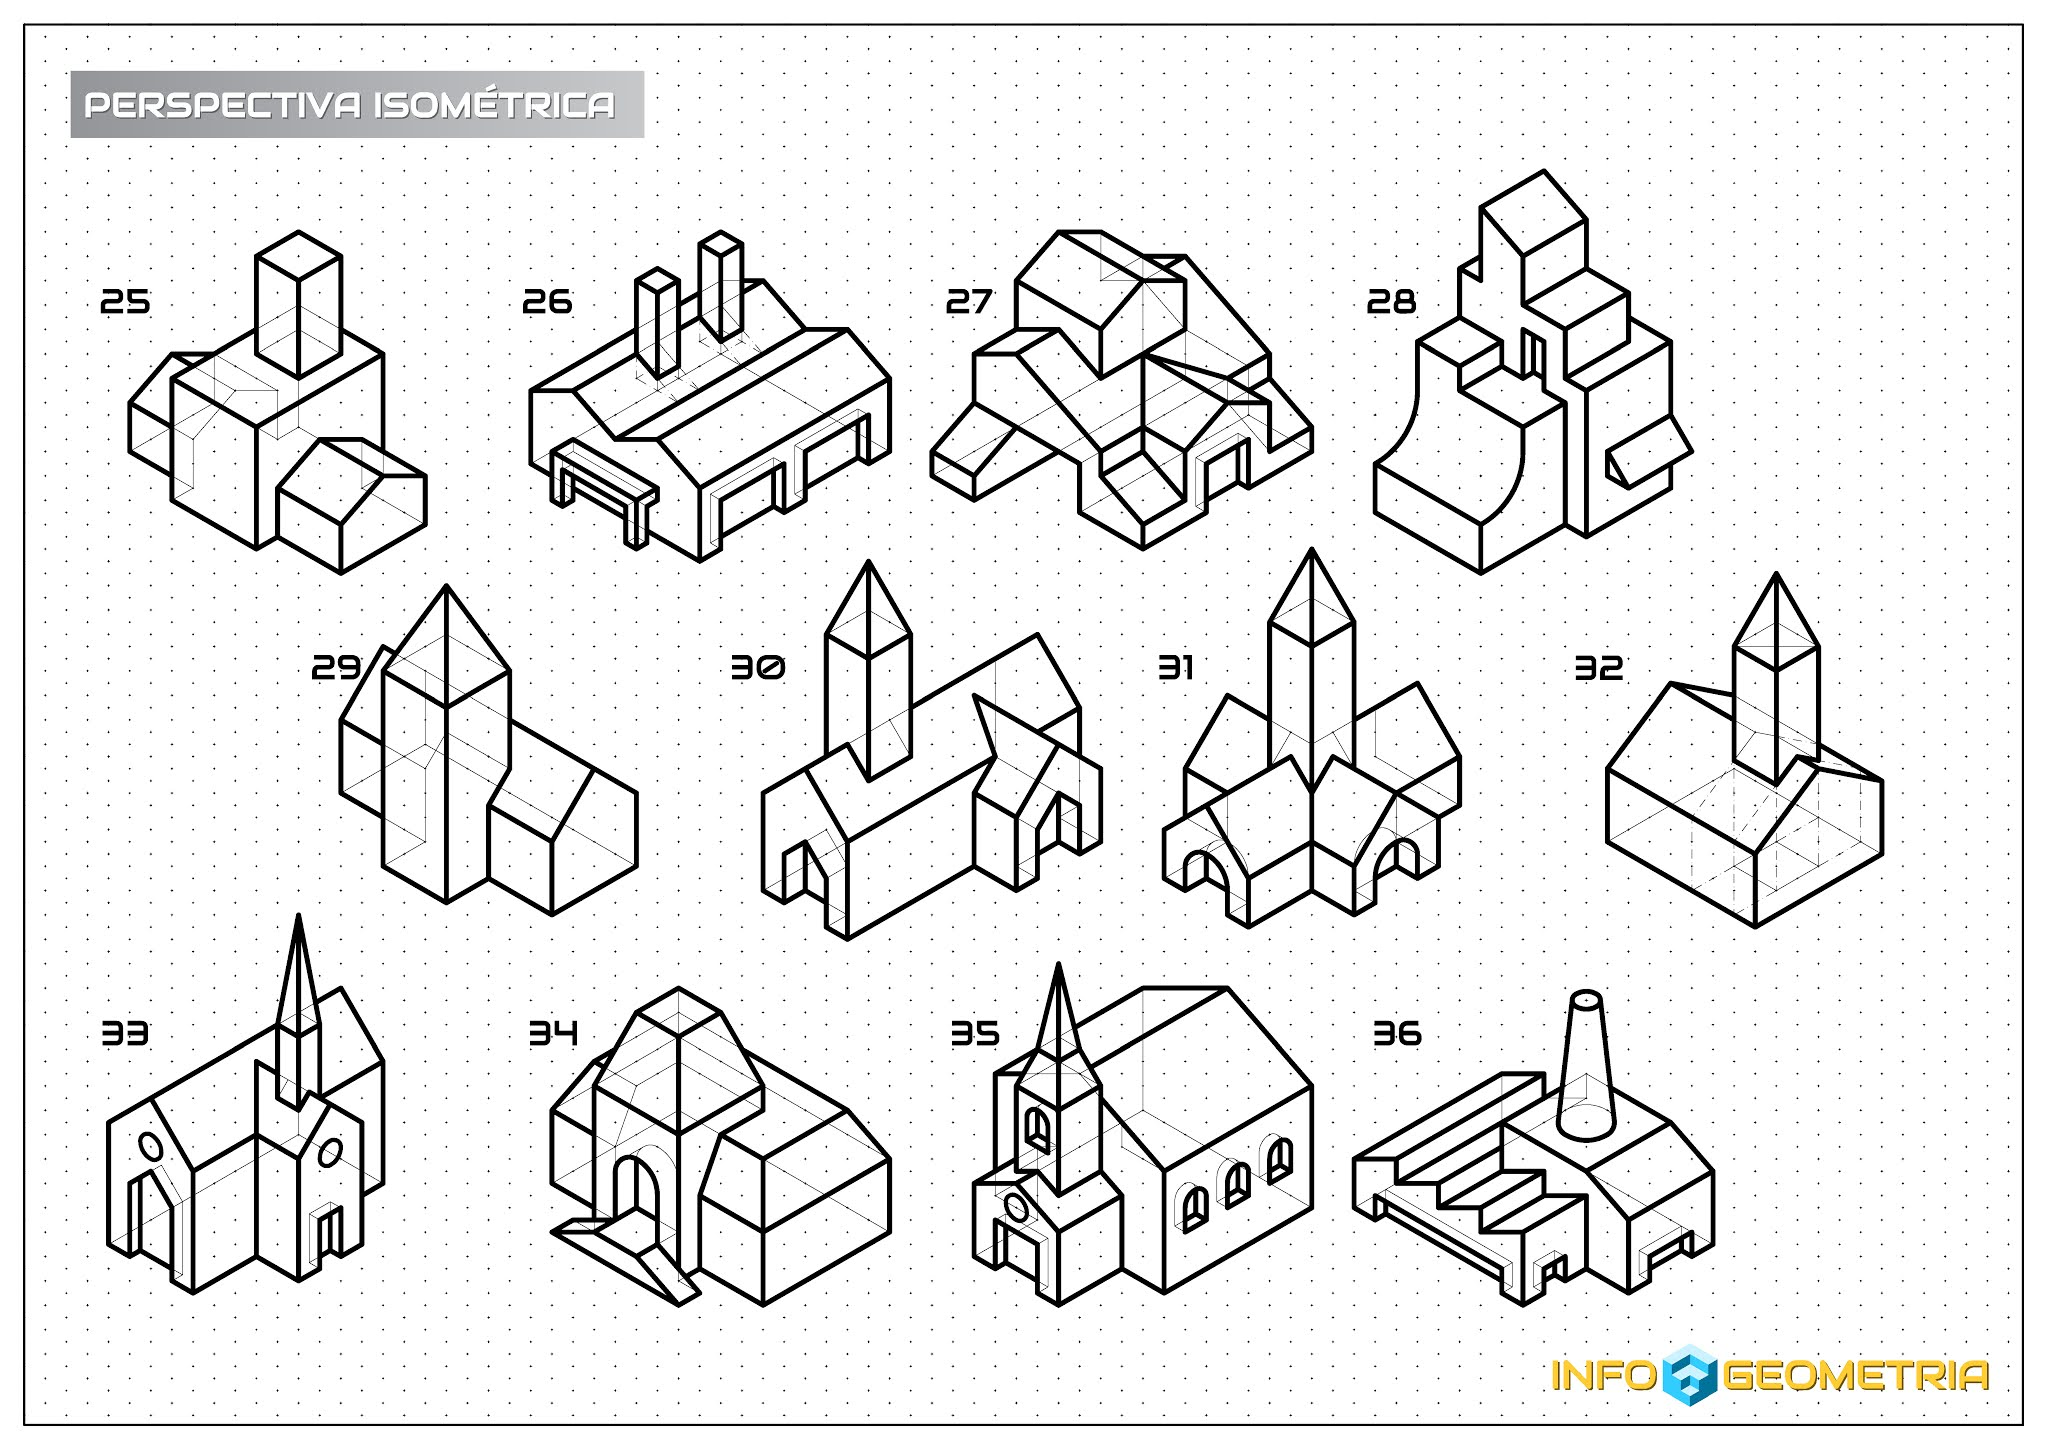 INFOGEOMETRÍA: 40 PERSPECTIVE EXERCISES. ISOMETRIC DRAWING